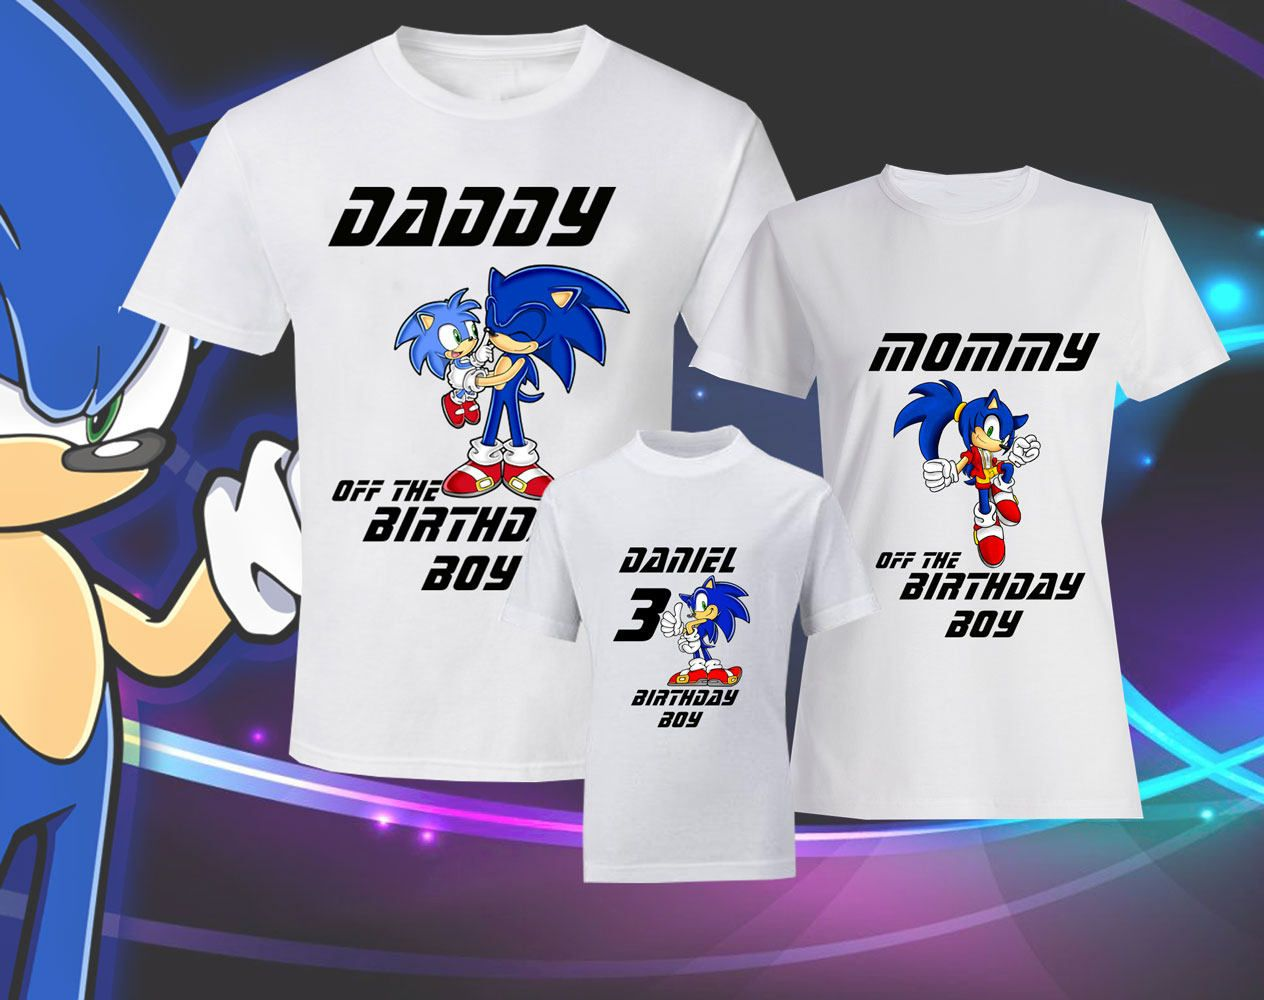 Birthday Sonic Shirts Sonic T Shirt Sonic Family Shirts Birthday T Shirts Sonic The Hedgehog Tee Miles Tails Prower Shirt Sonic T Shirt Family Shirts Shirts